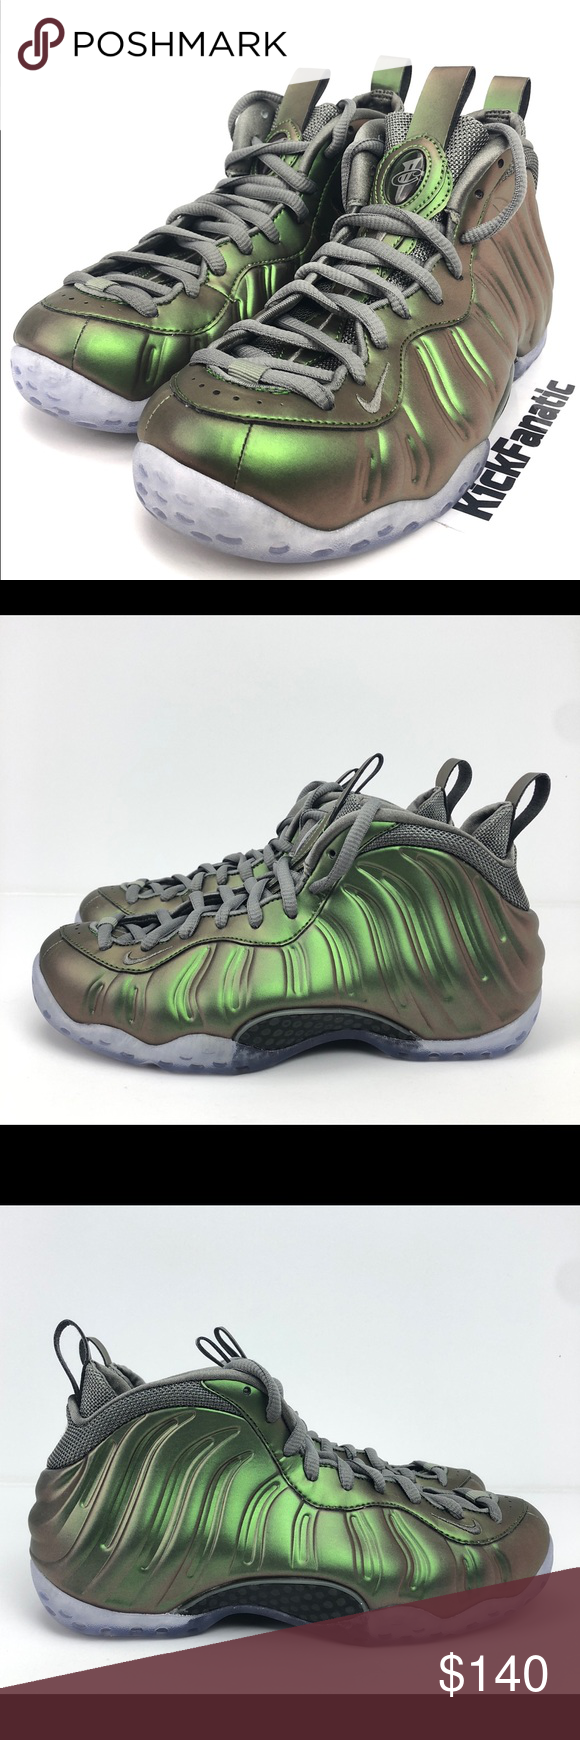 Nike Air Foamposite One Shine? Dark StuccoBlack Latest ...